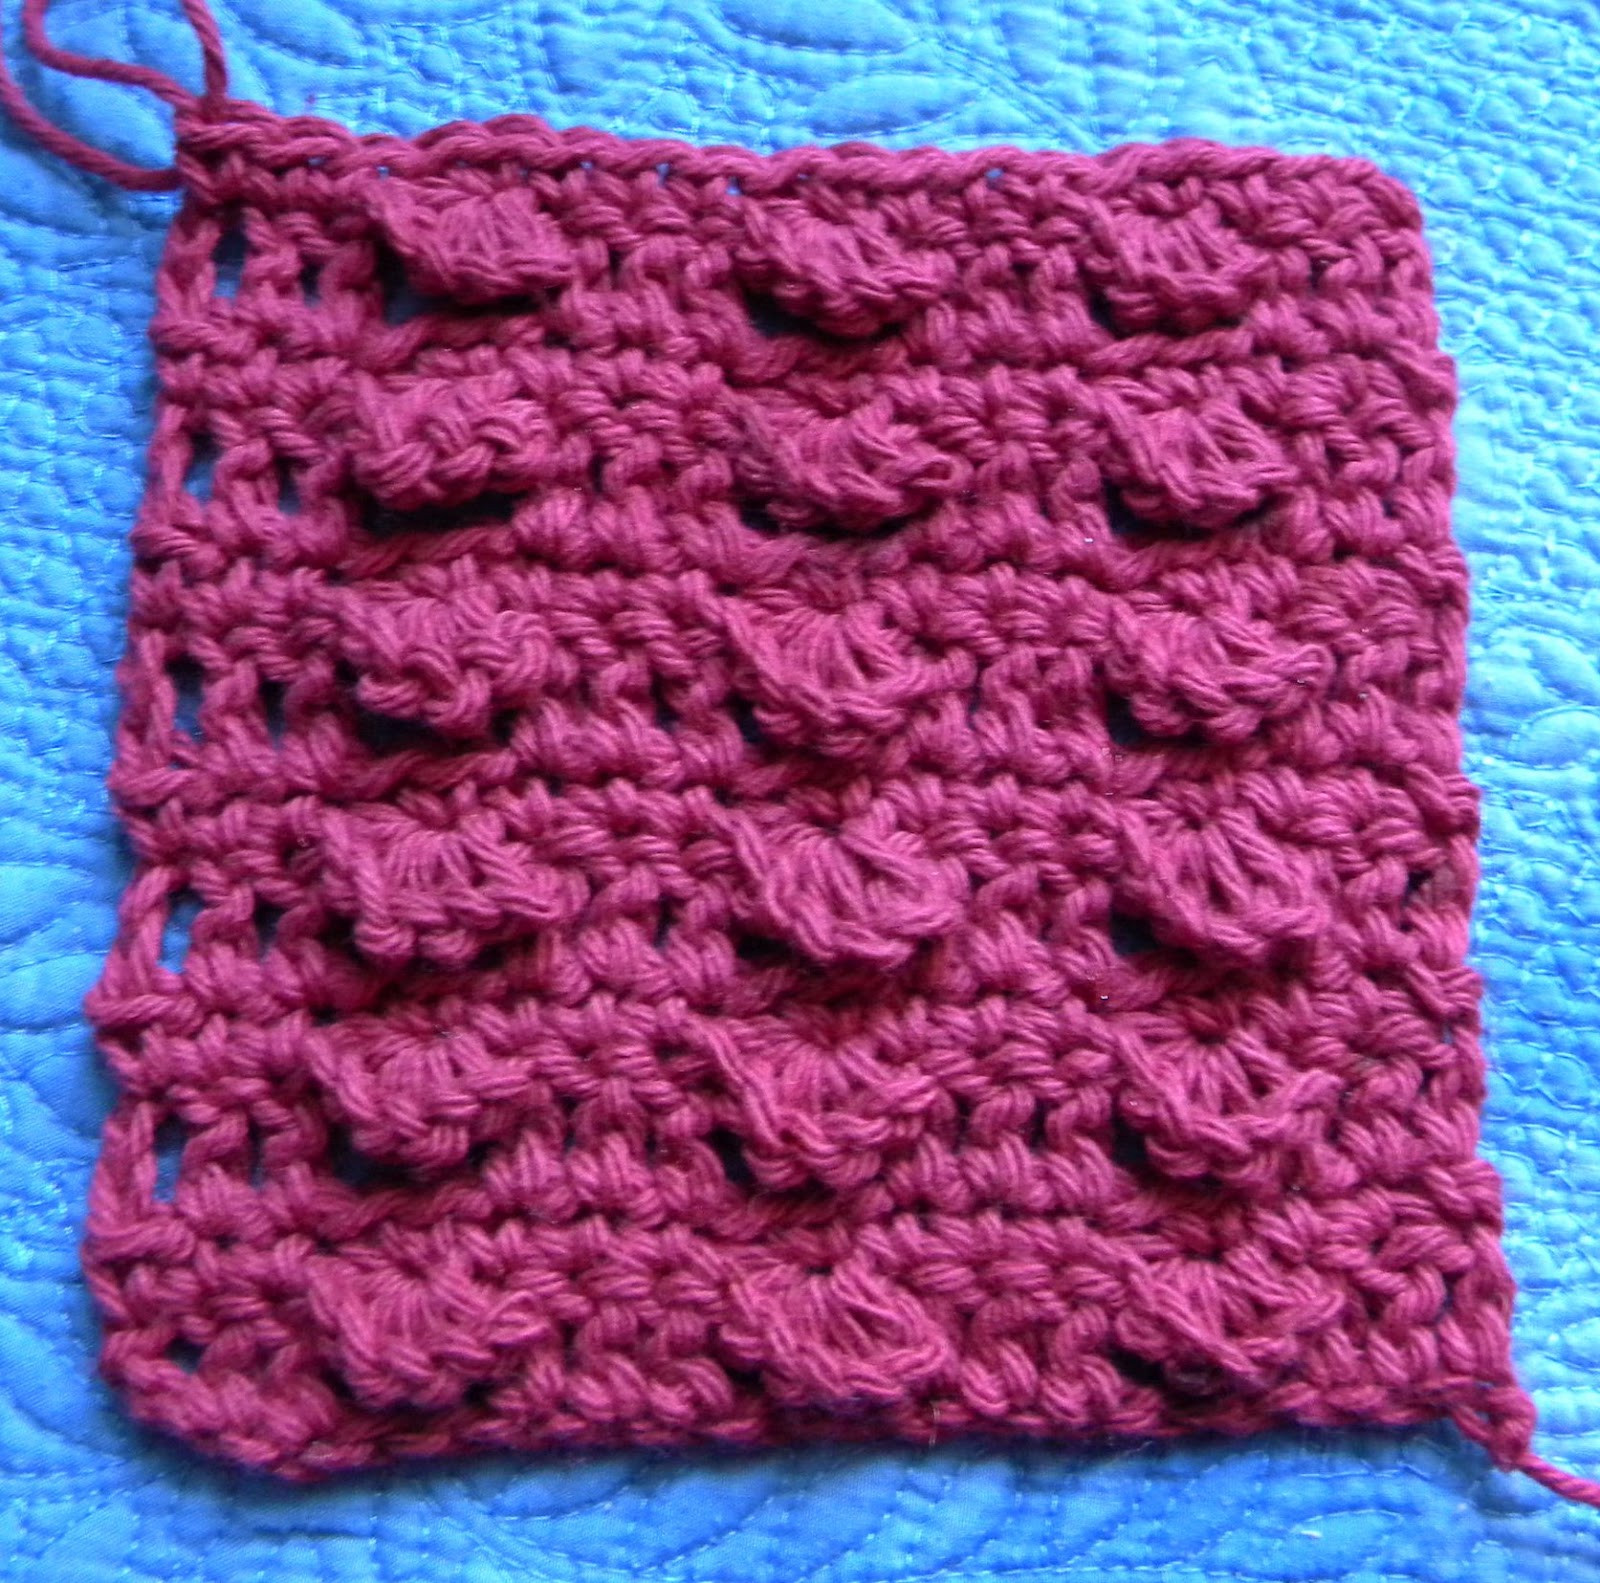 Fresh the Gallery for Different Crochet Stitches Patterns Crochet Stitches with Pictures Of Marvelous 46 Photos Crochet Stitches with Pictures